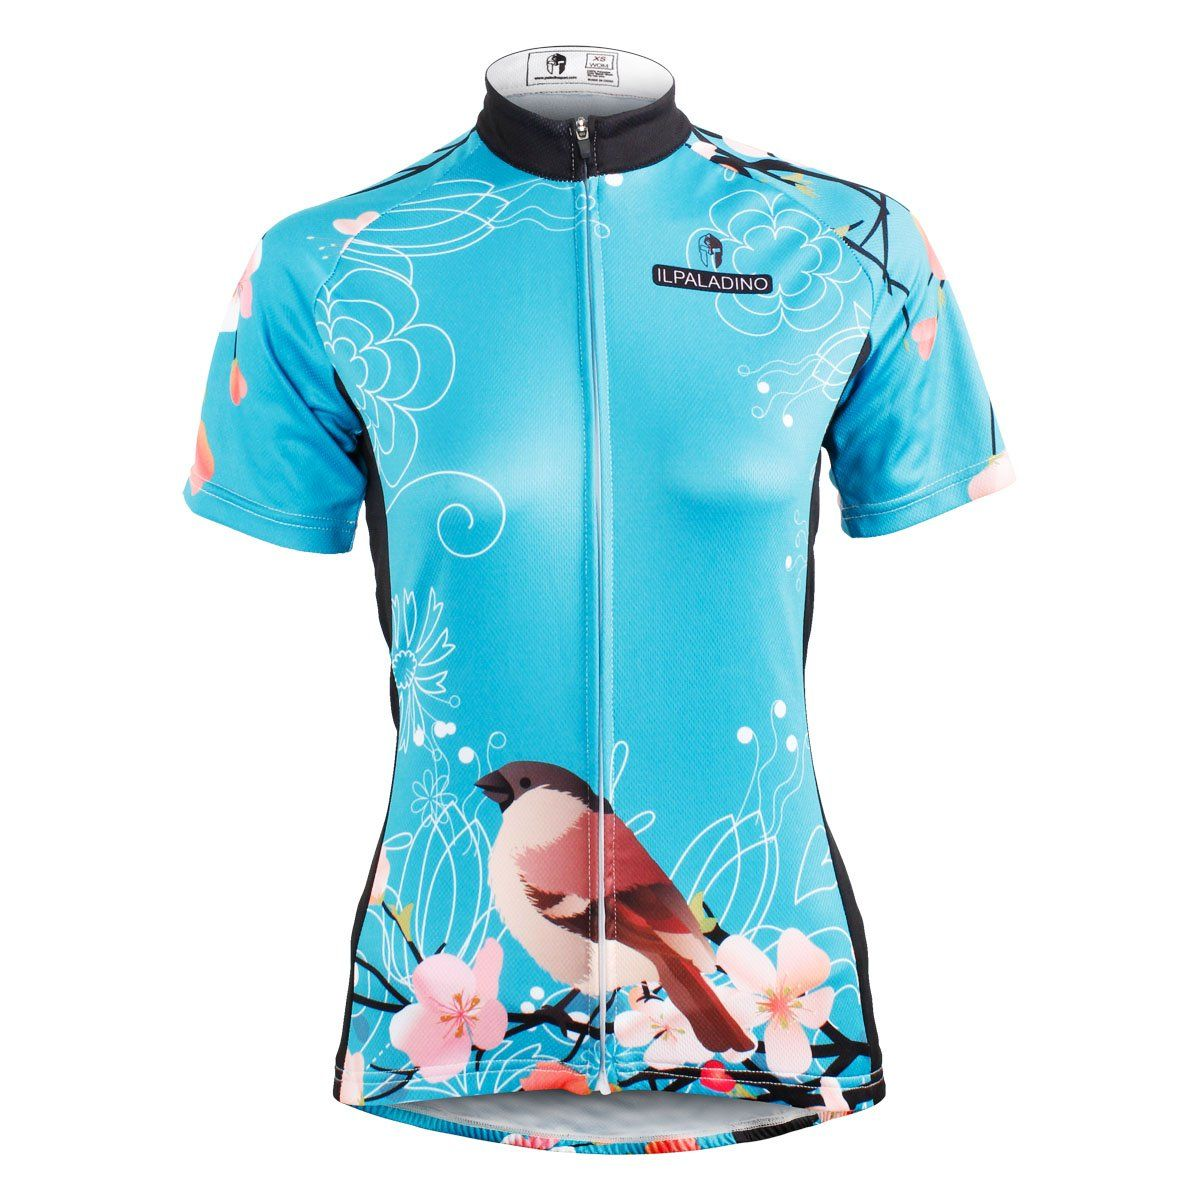 Ilpaladino Women s Peach Blossom  Magpies Cycling Jersey Short long Sleeve  Breathable Summer Bicycling Clothes Apparel Outdoor Sports Leisure Biking  Shirt ... 4c1991c58